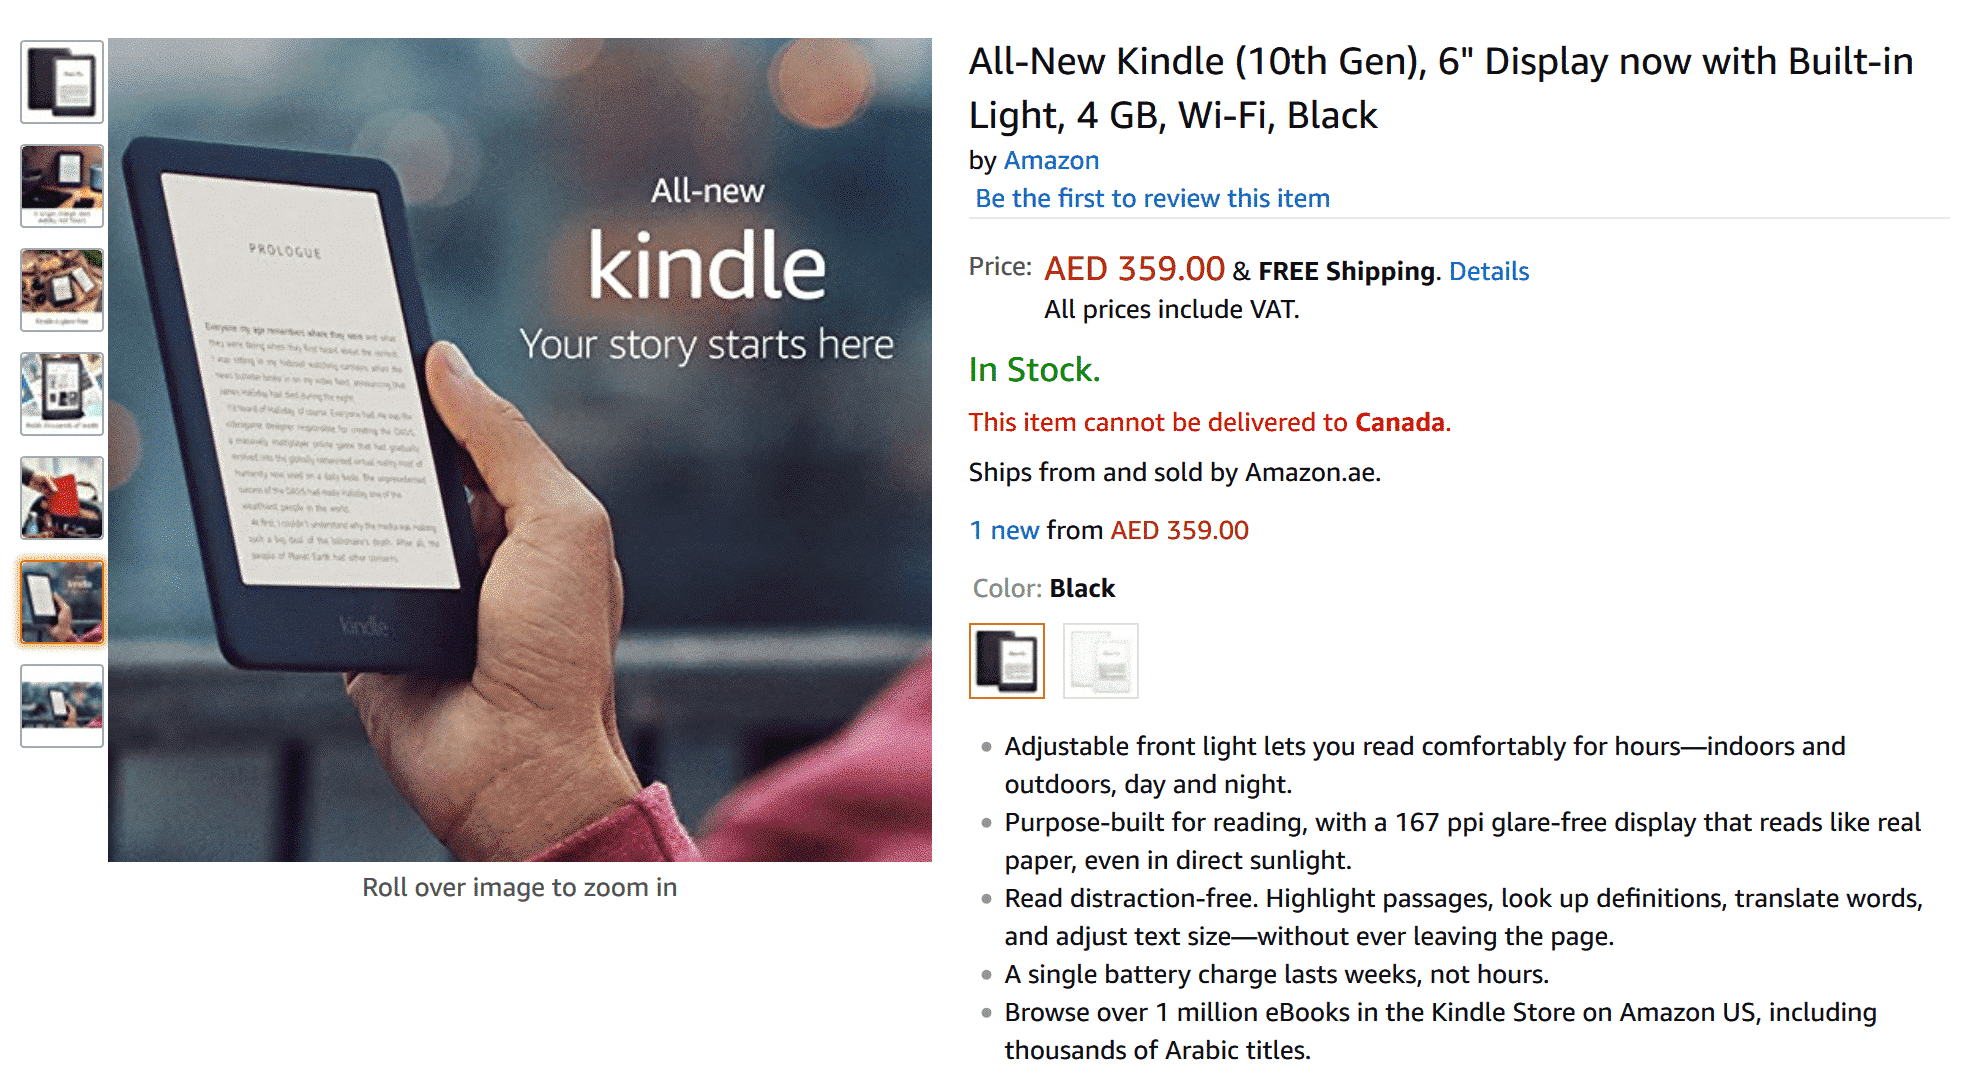 Amazon is now directly selling the Kindle in the UAE